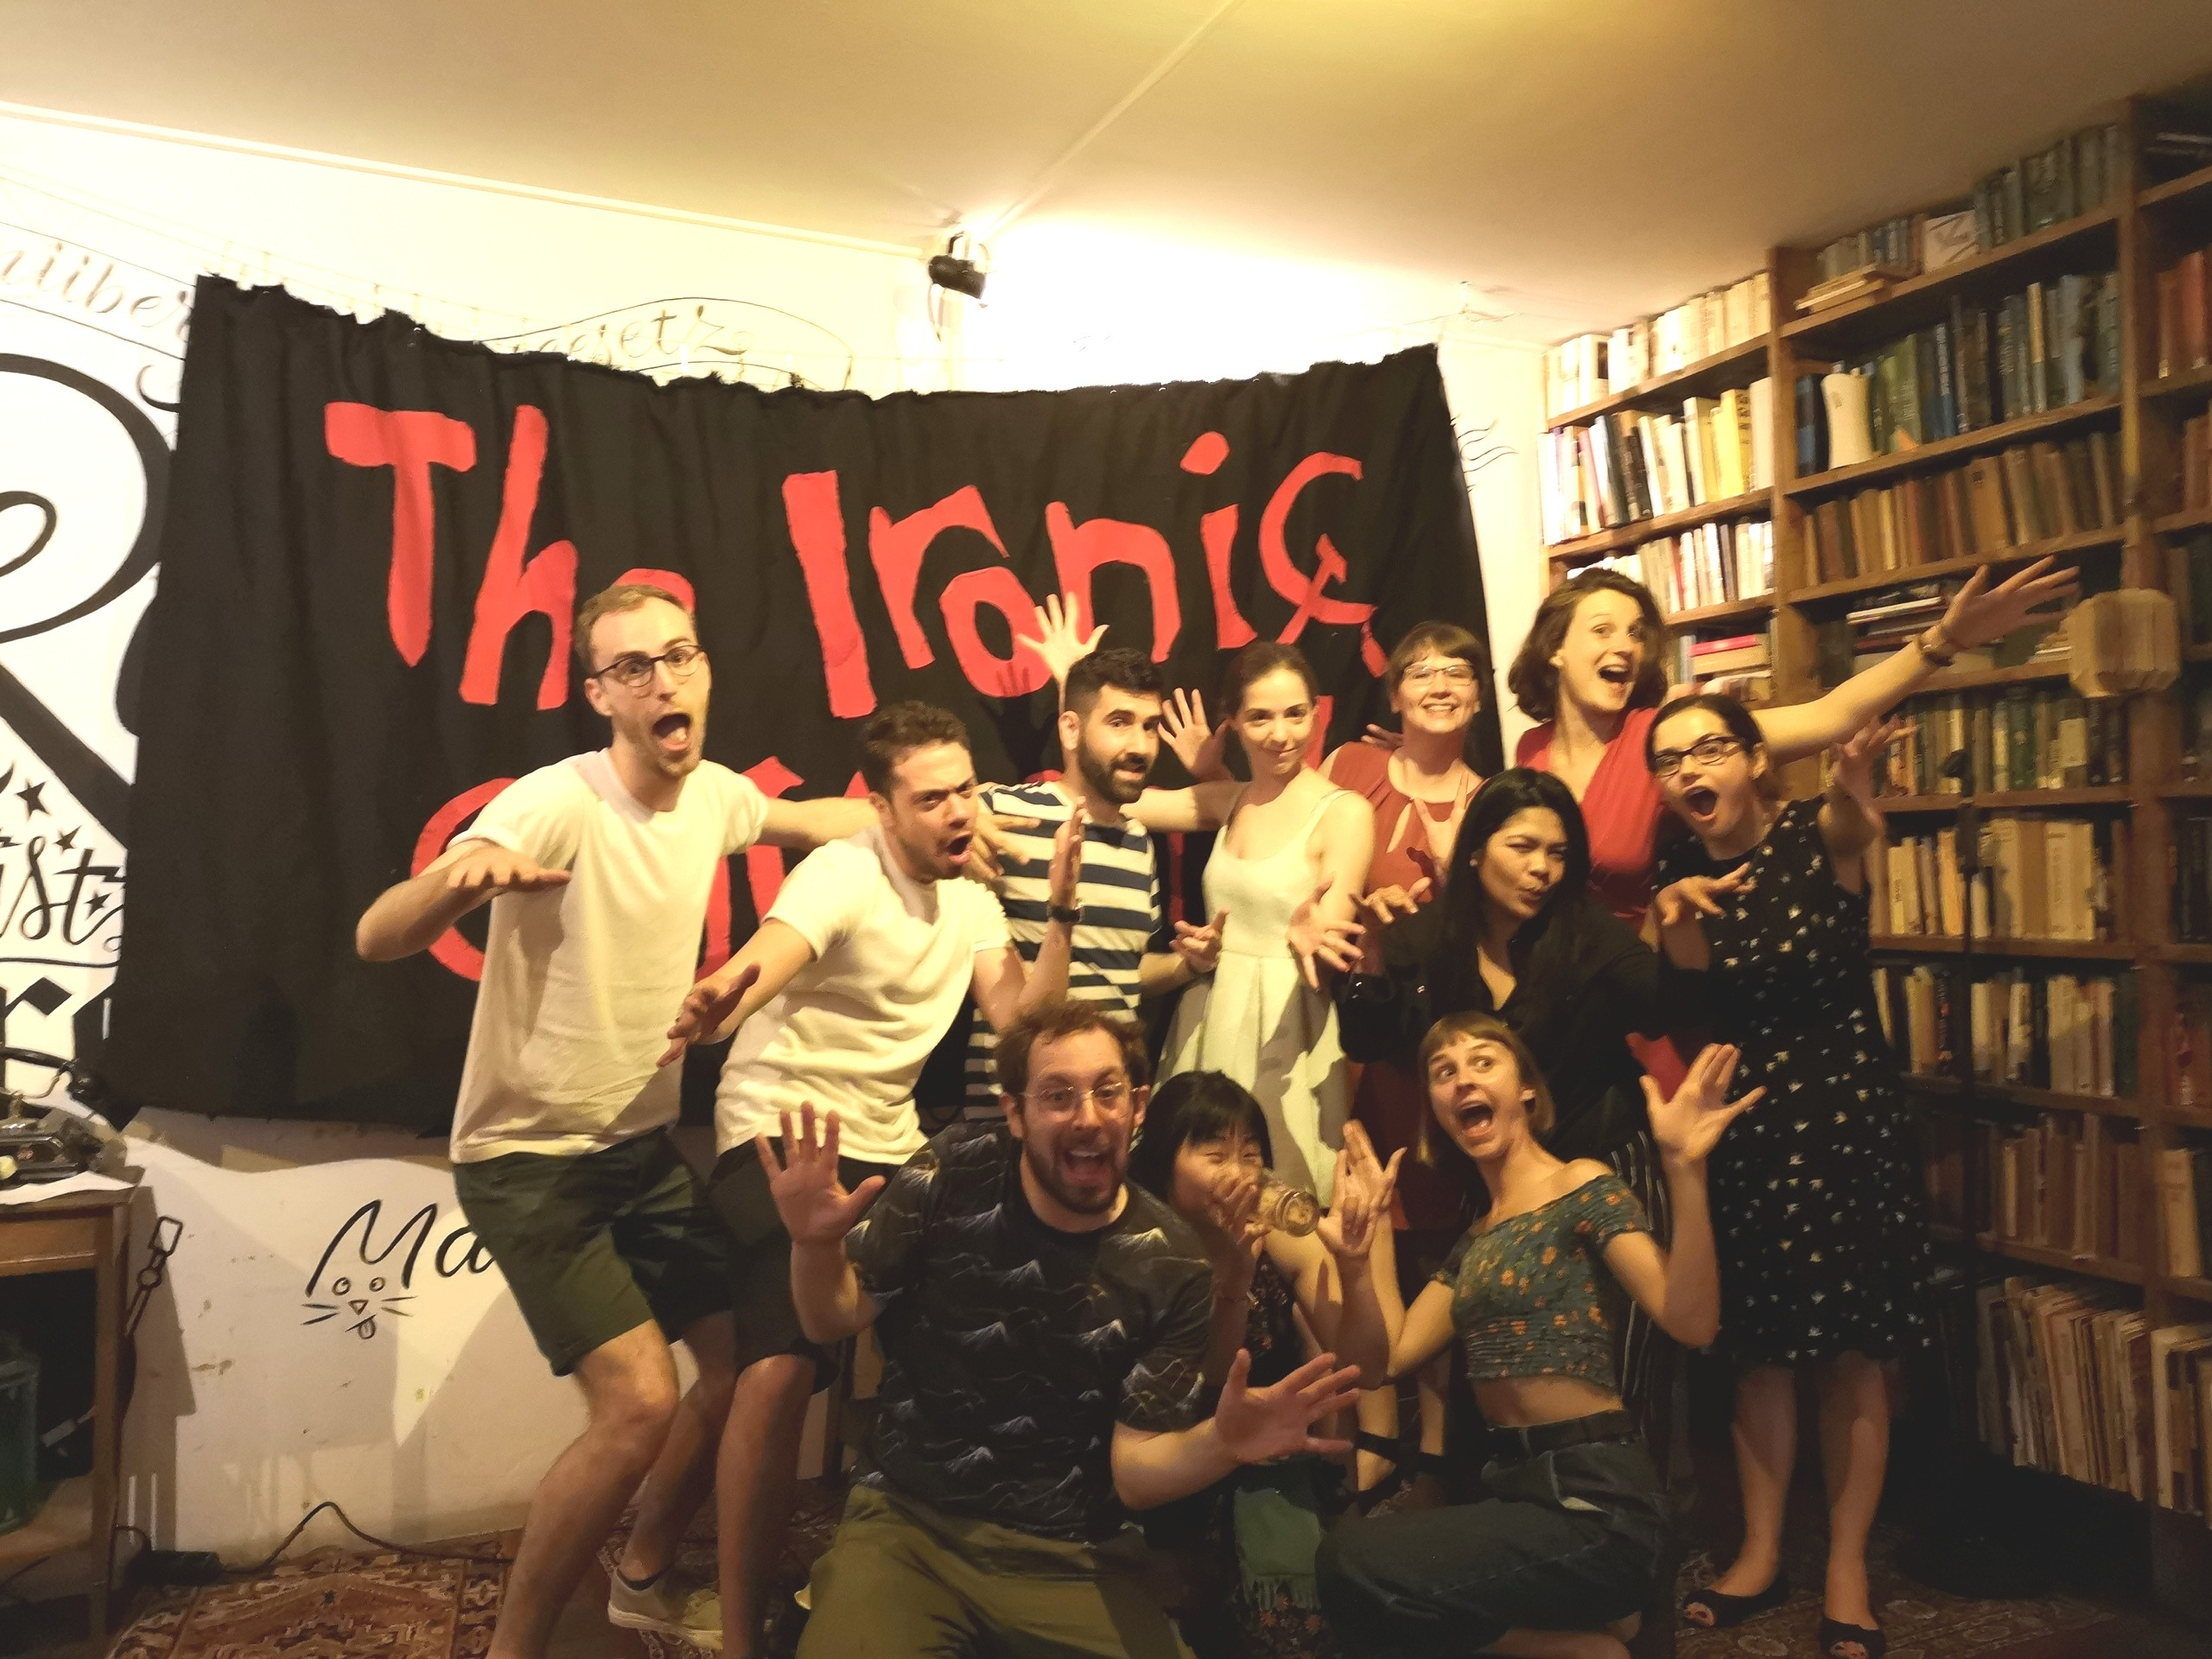 A group of people poses for the picture. Behind them there is a black banner with red letters and a library.